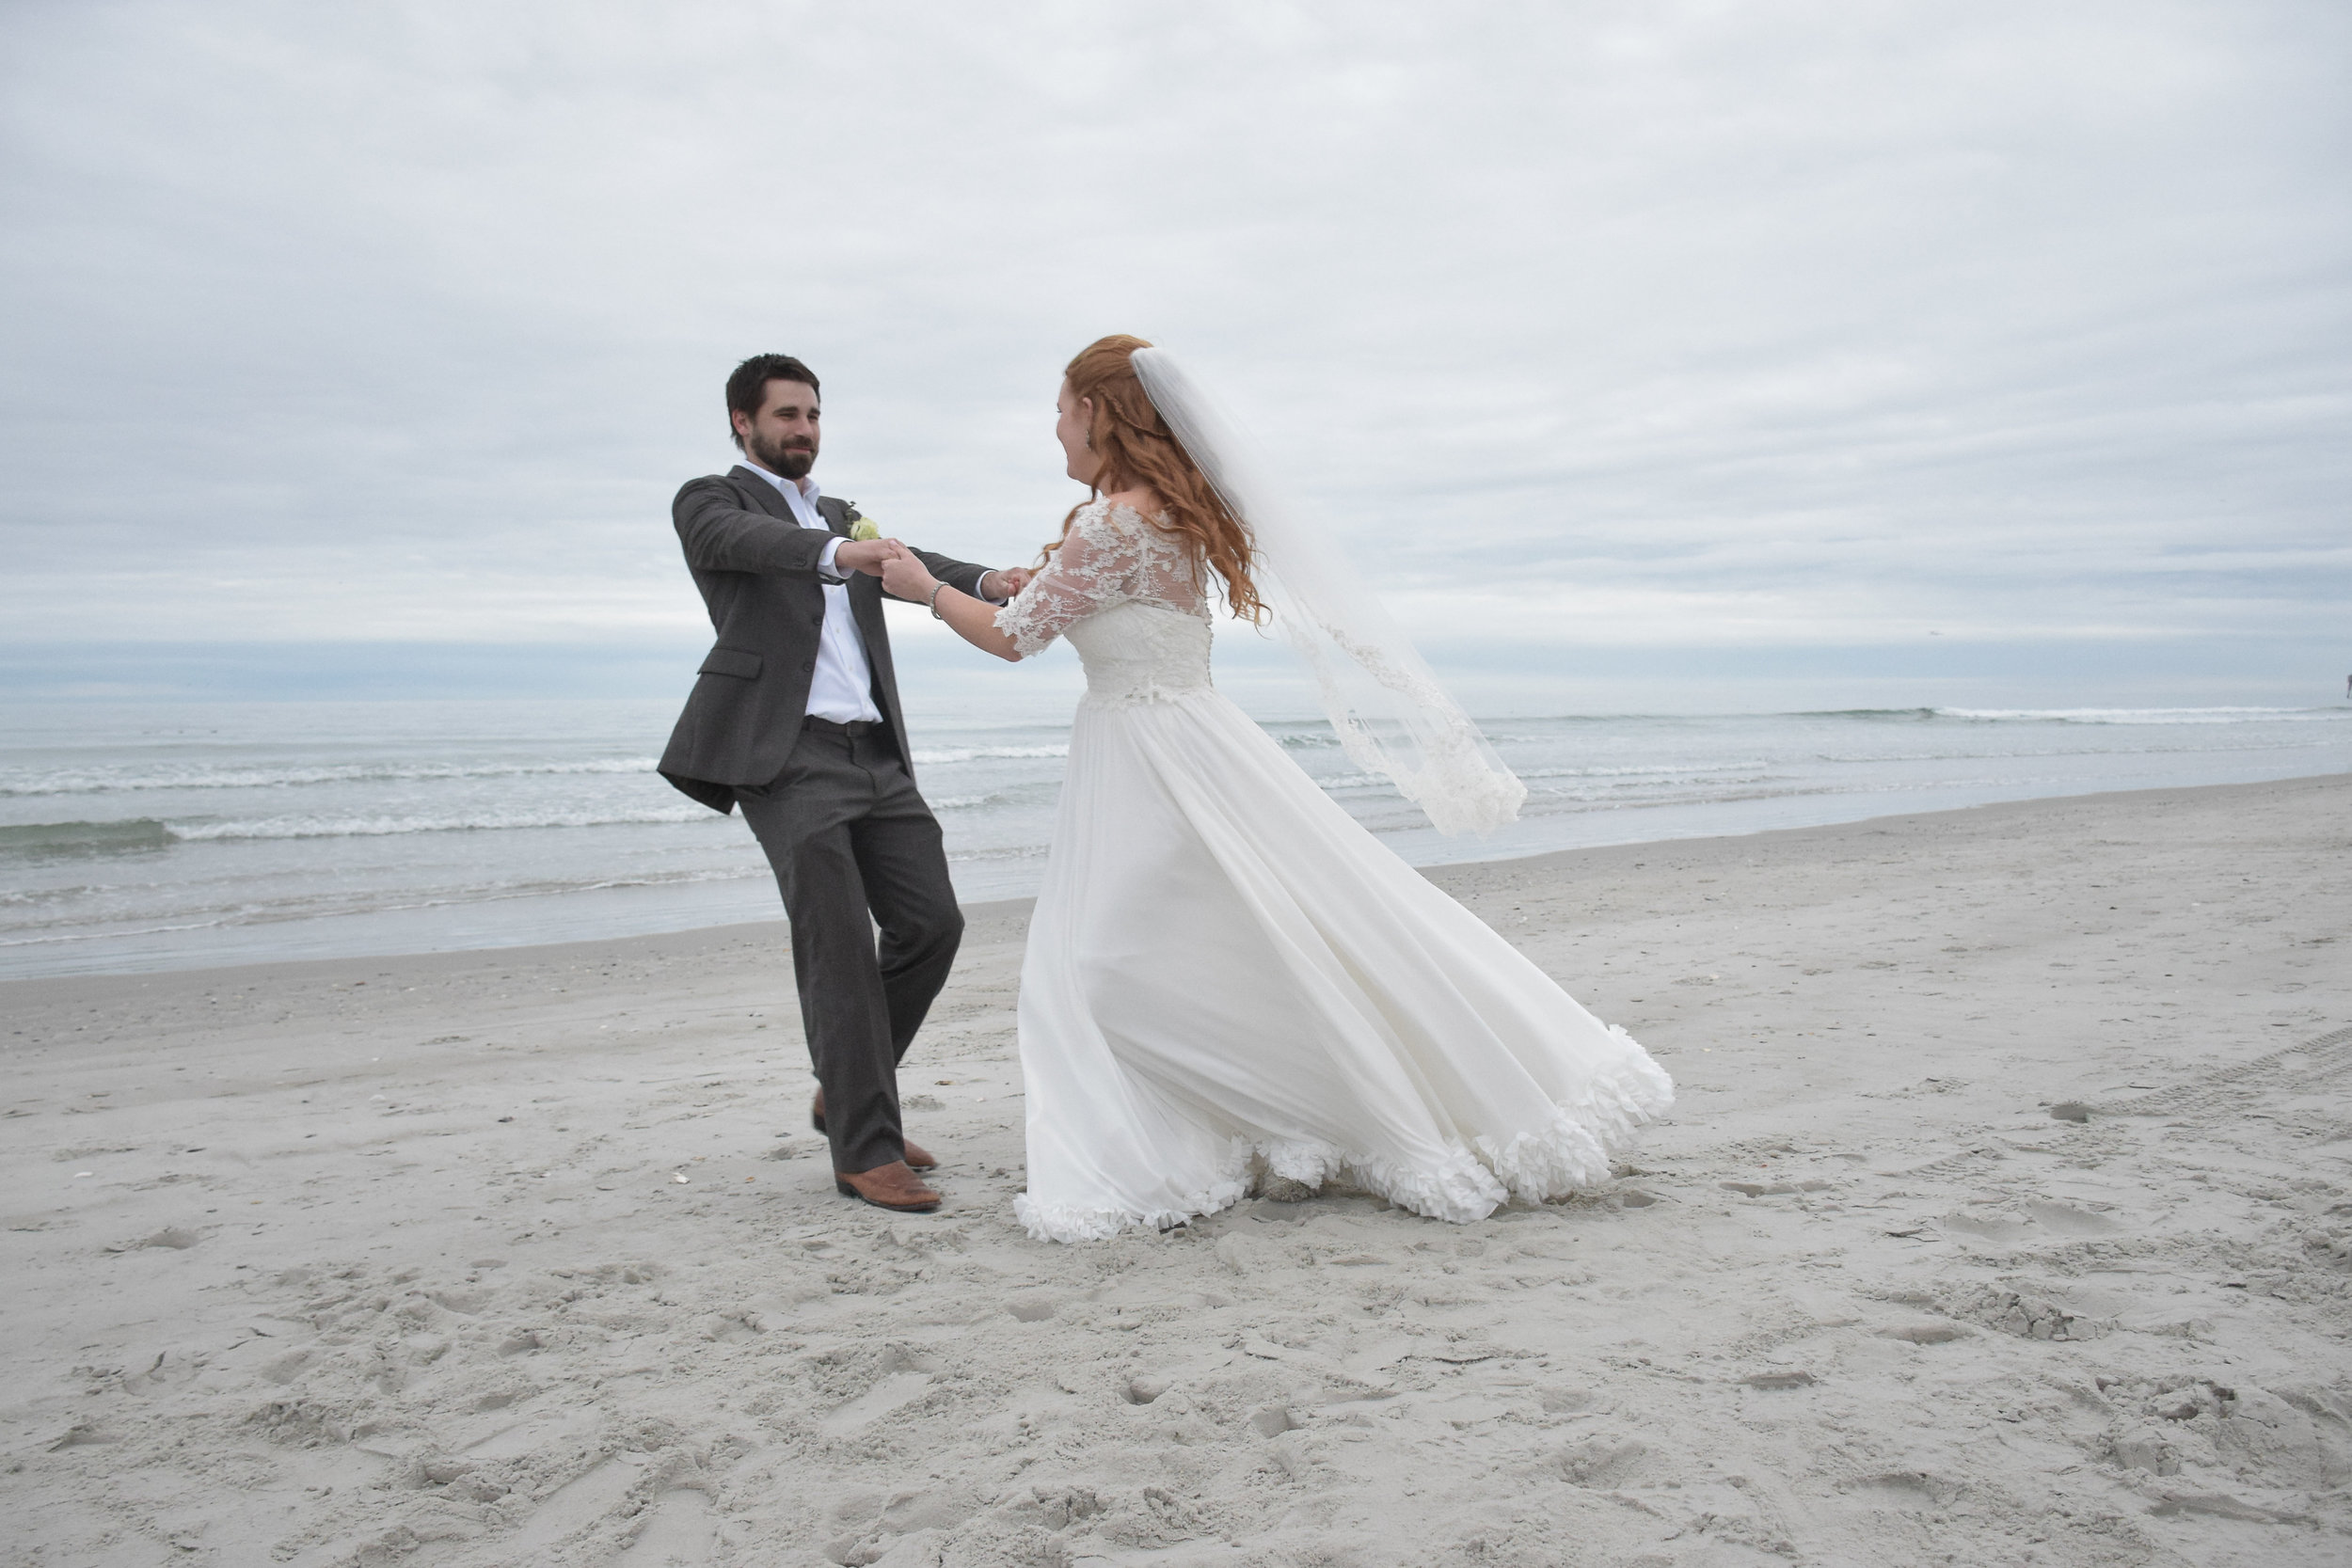 - Bride and groom spinning on a January beach to warm up. Ocean in the background. Wrightsville Beach, NC.